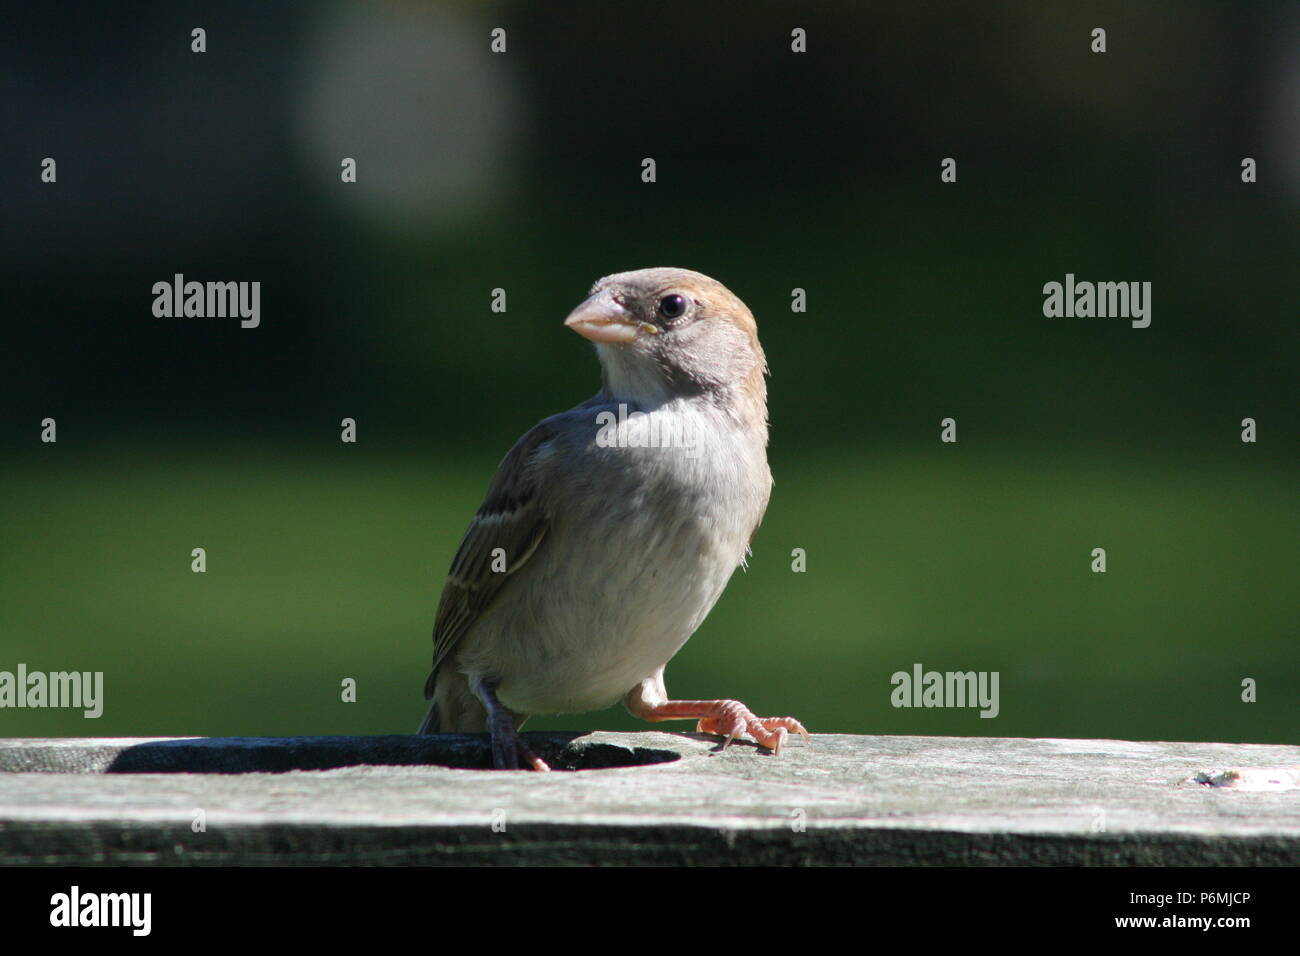 Passer domesticus (House Sparrow) - Stock Image